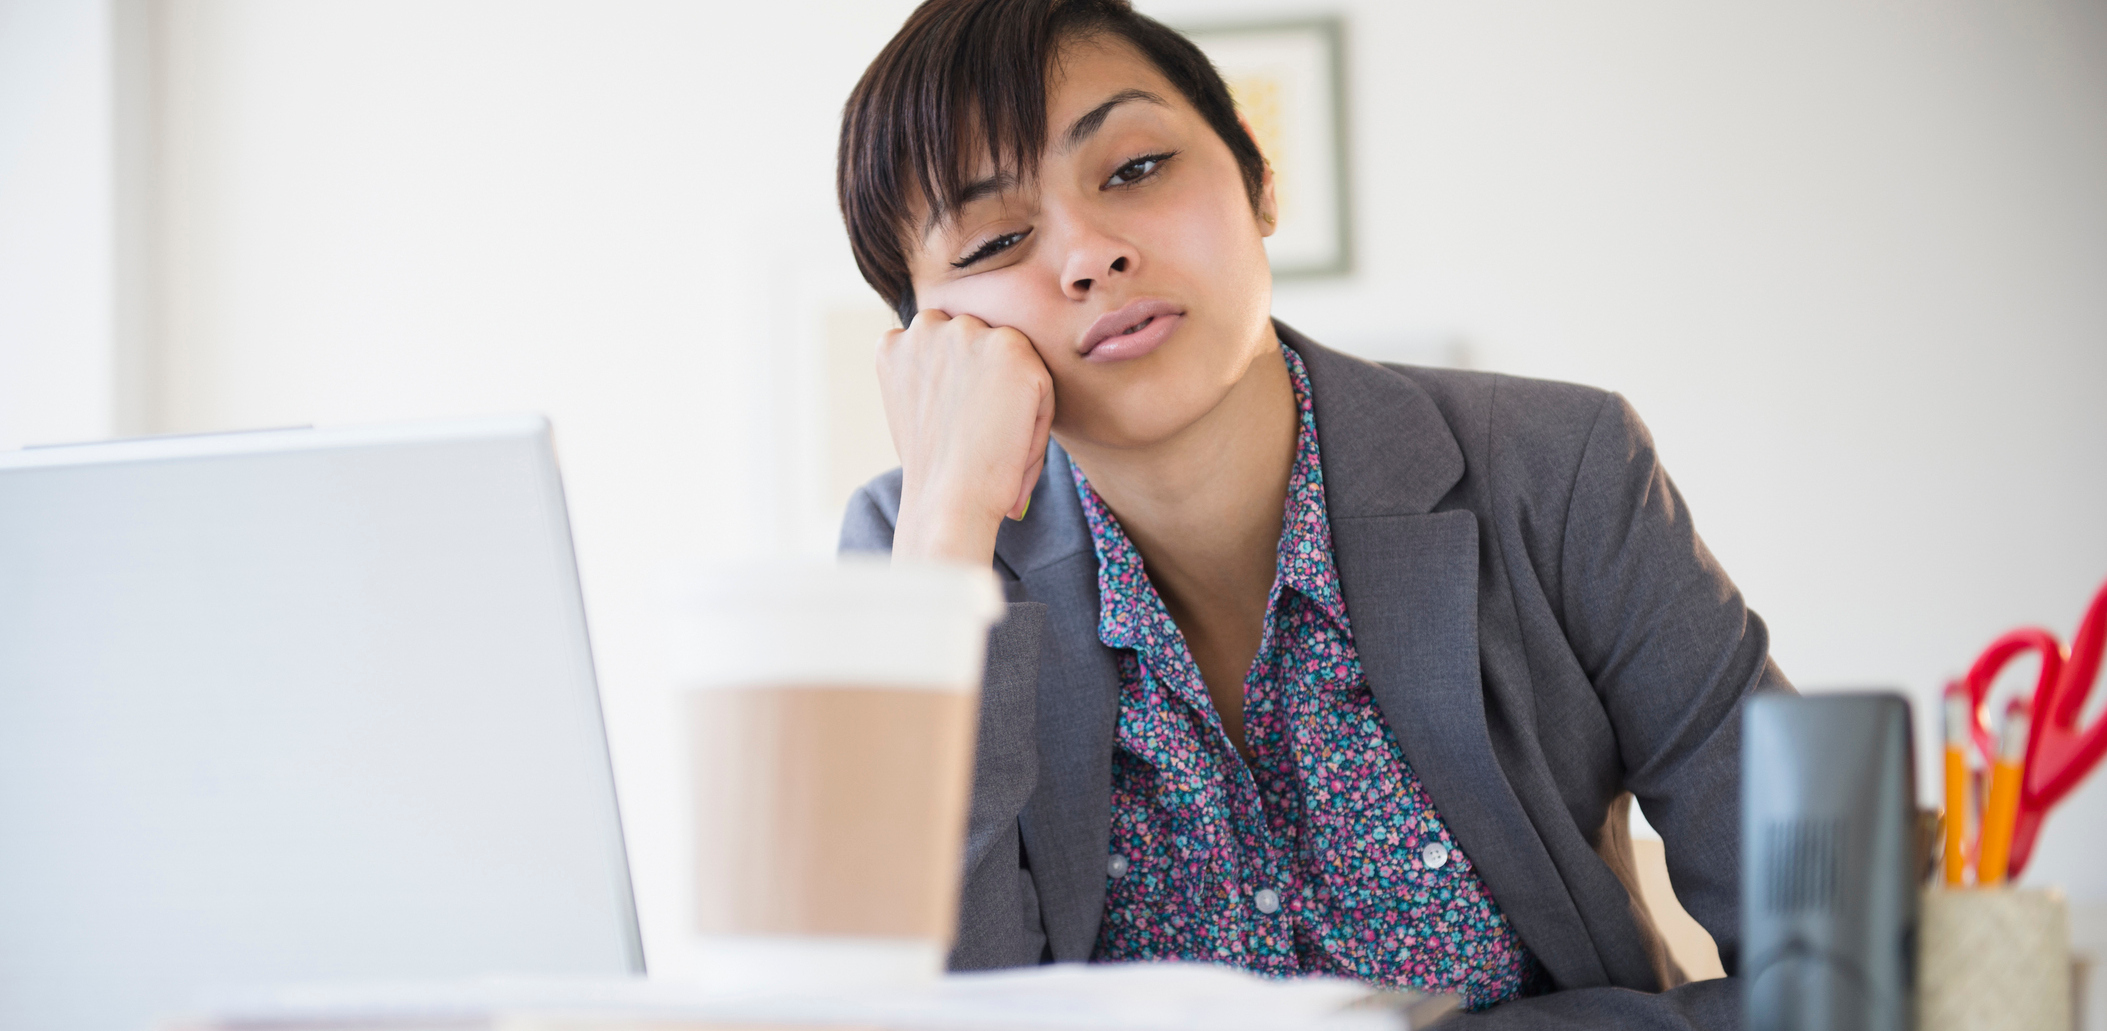 3 mistakes people make when bored at work